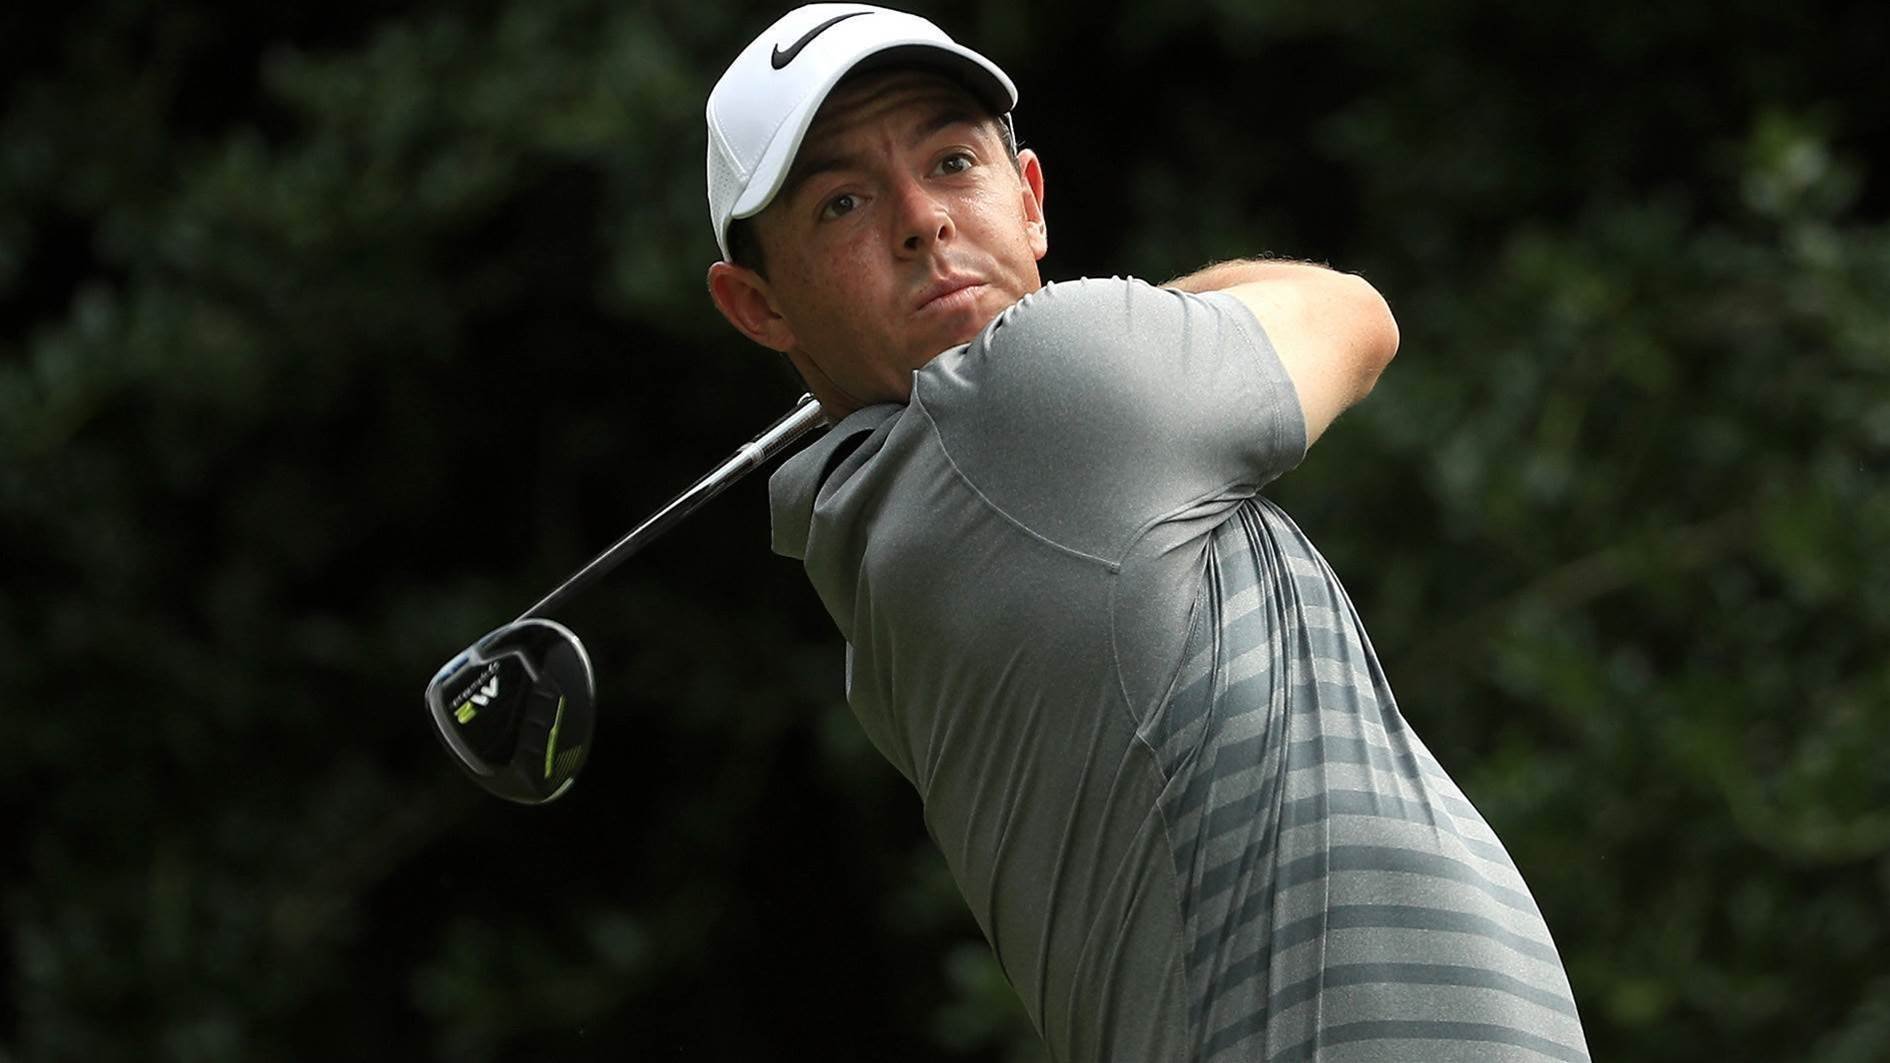 PGA: Rory tough to beat at soft Quail Hollow